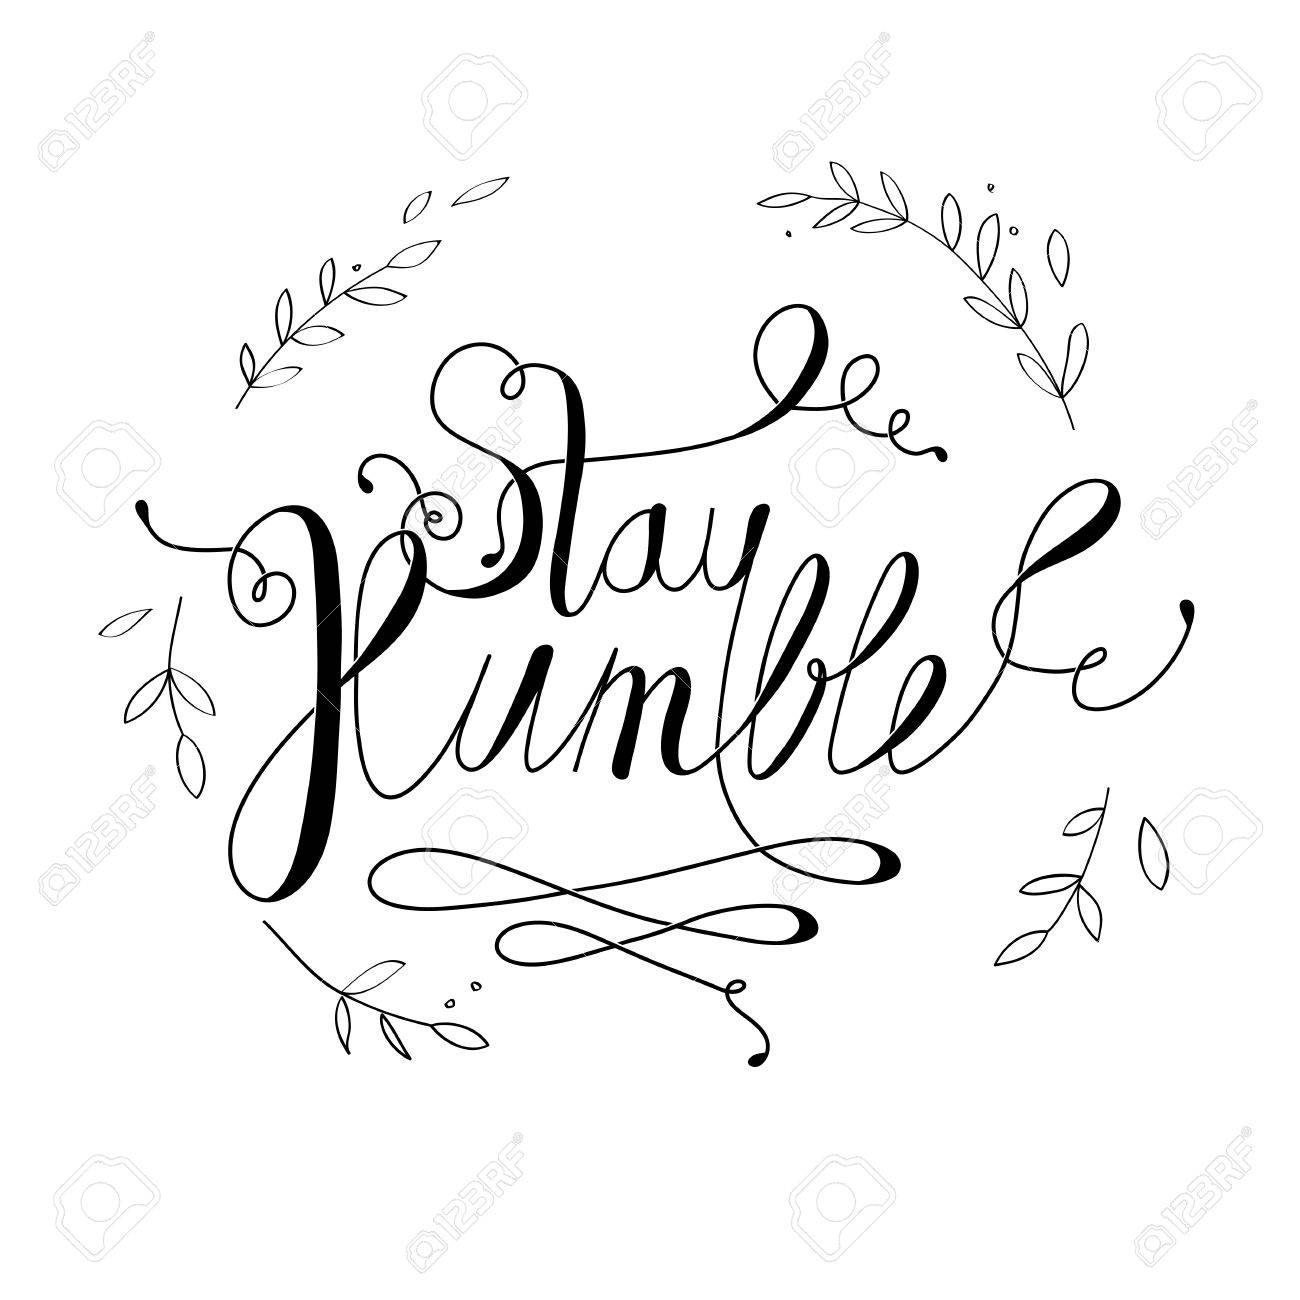 Minimalist Hand Draw Text Of An Inspirational Saying Stay Humble